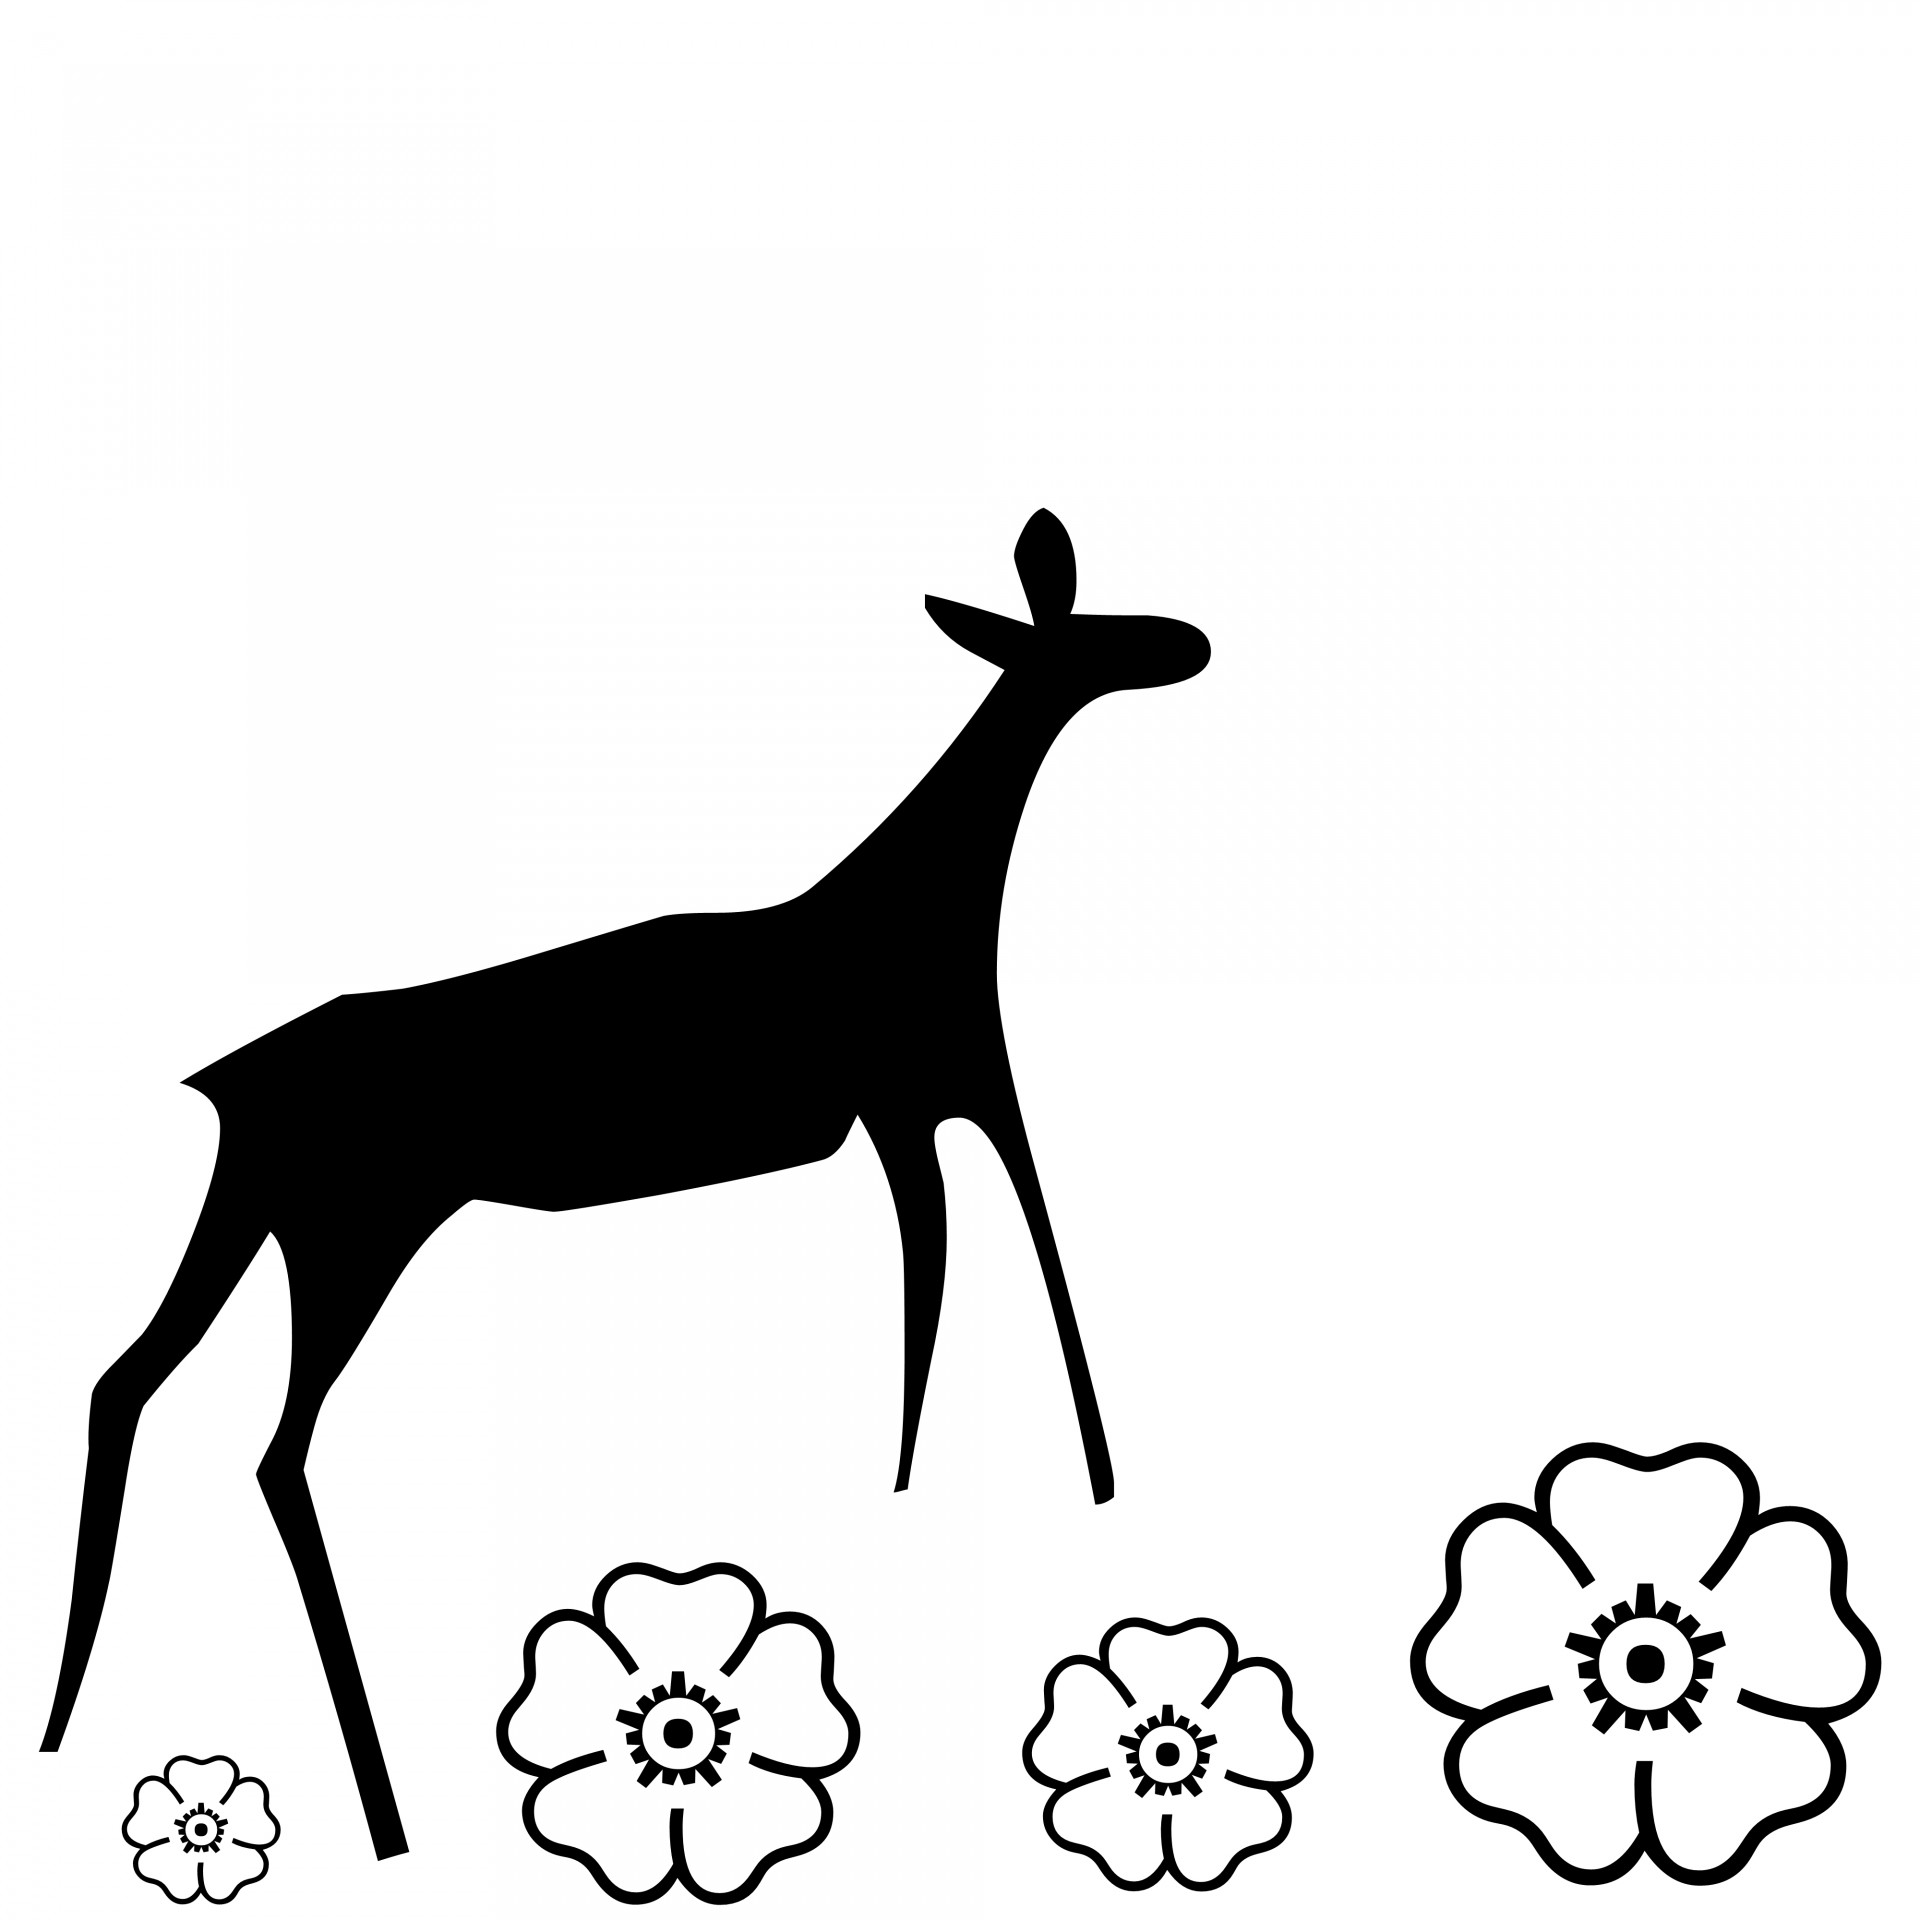 1920x1920 Silhouette Of A Doe Free Stock Photo